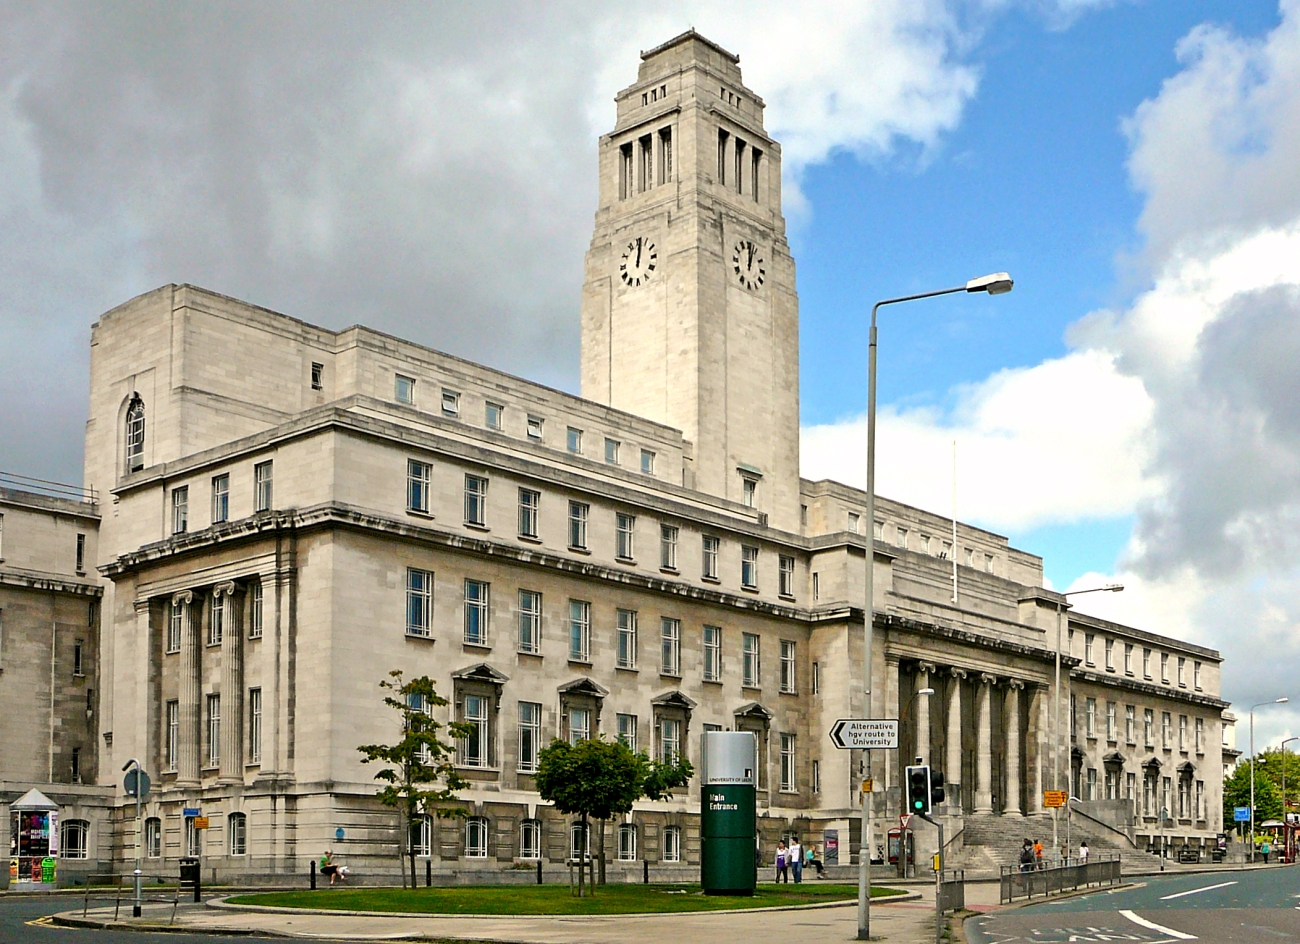 Parkinson_Building,_Leeds_University,_England-12Sept2010